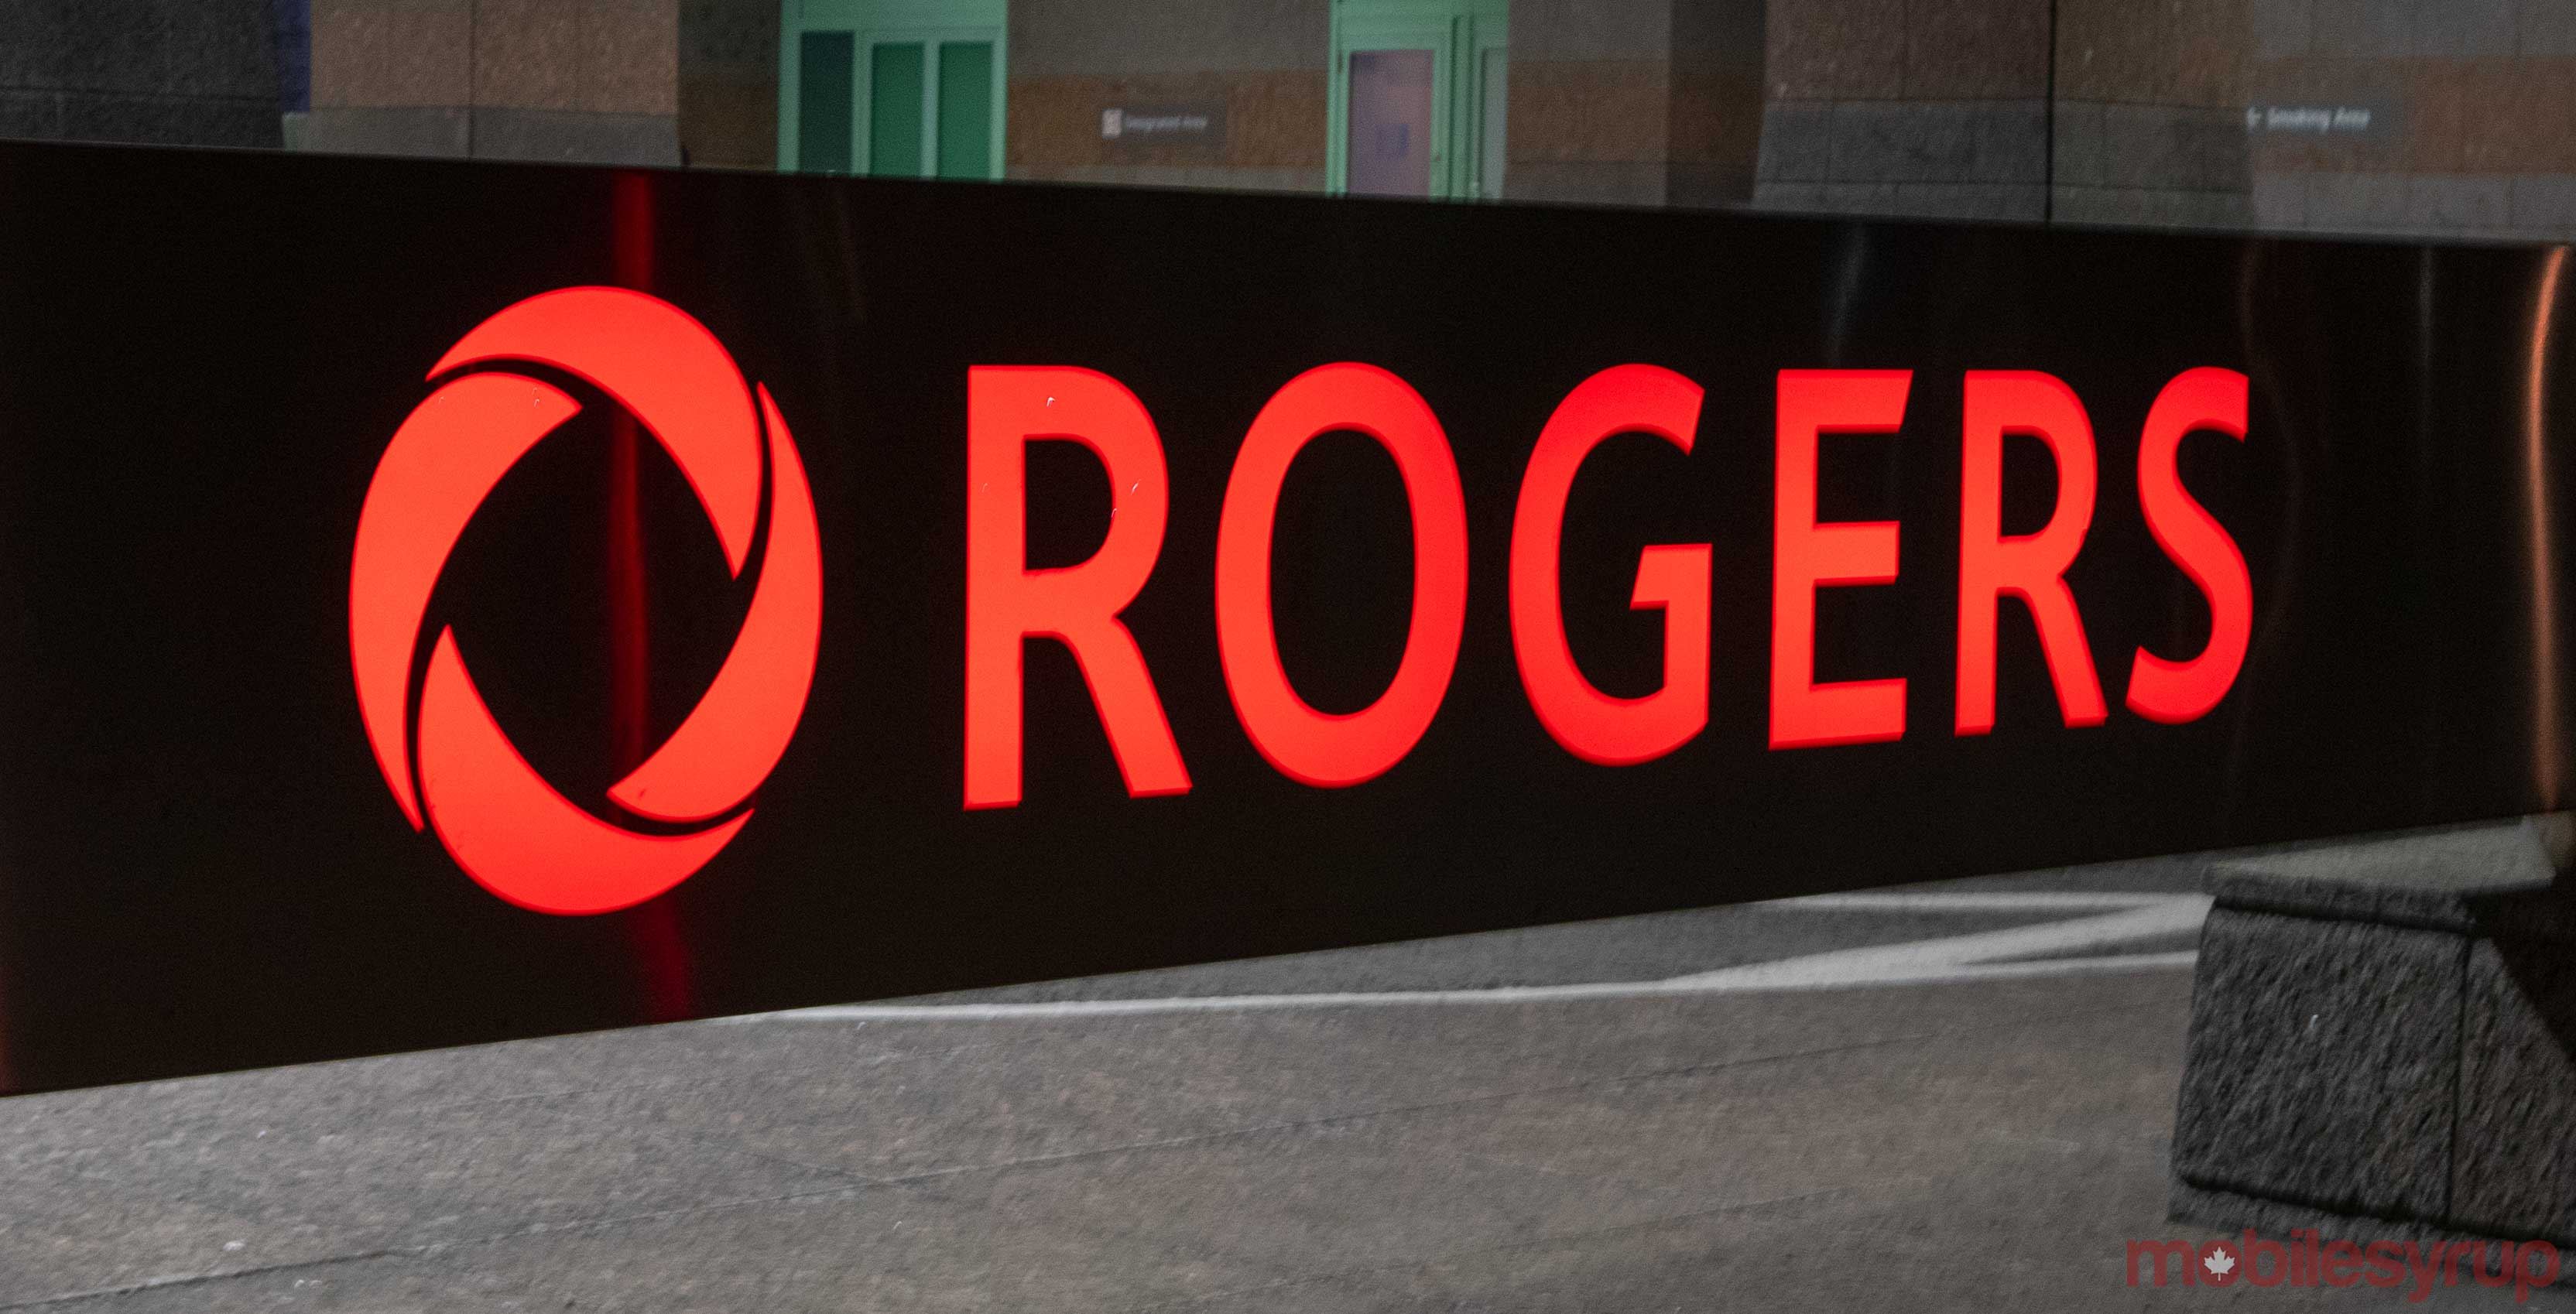 Rogers reportedly still offering $80/10GB, $500 credit for win-back customers